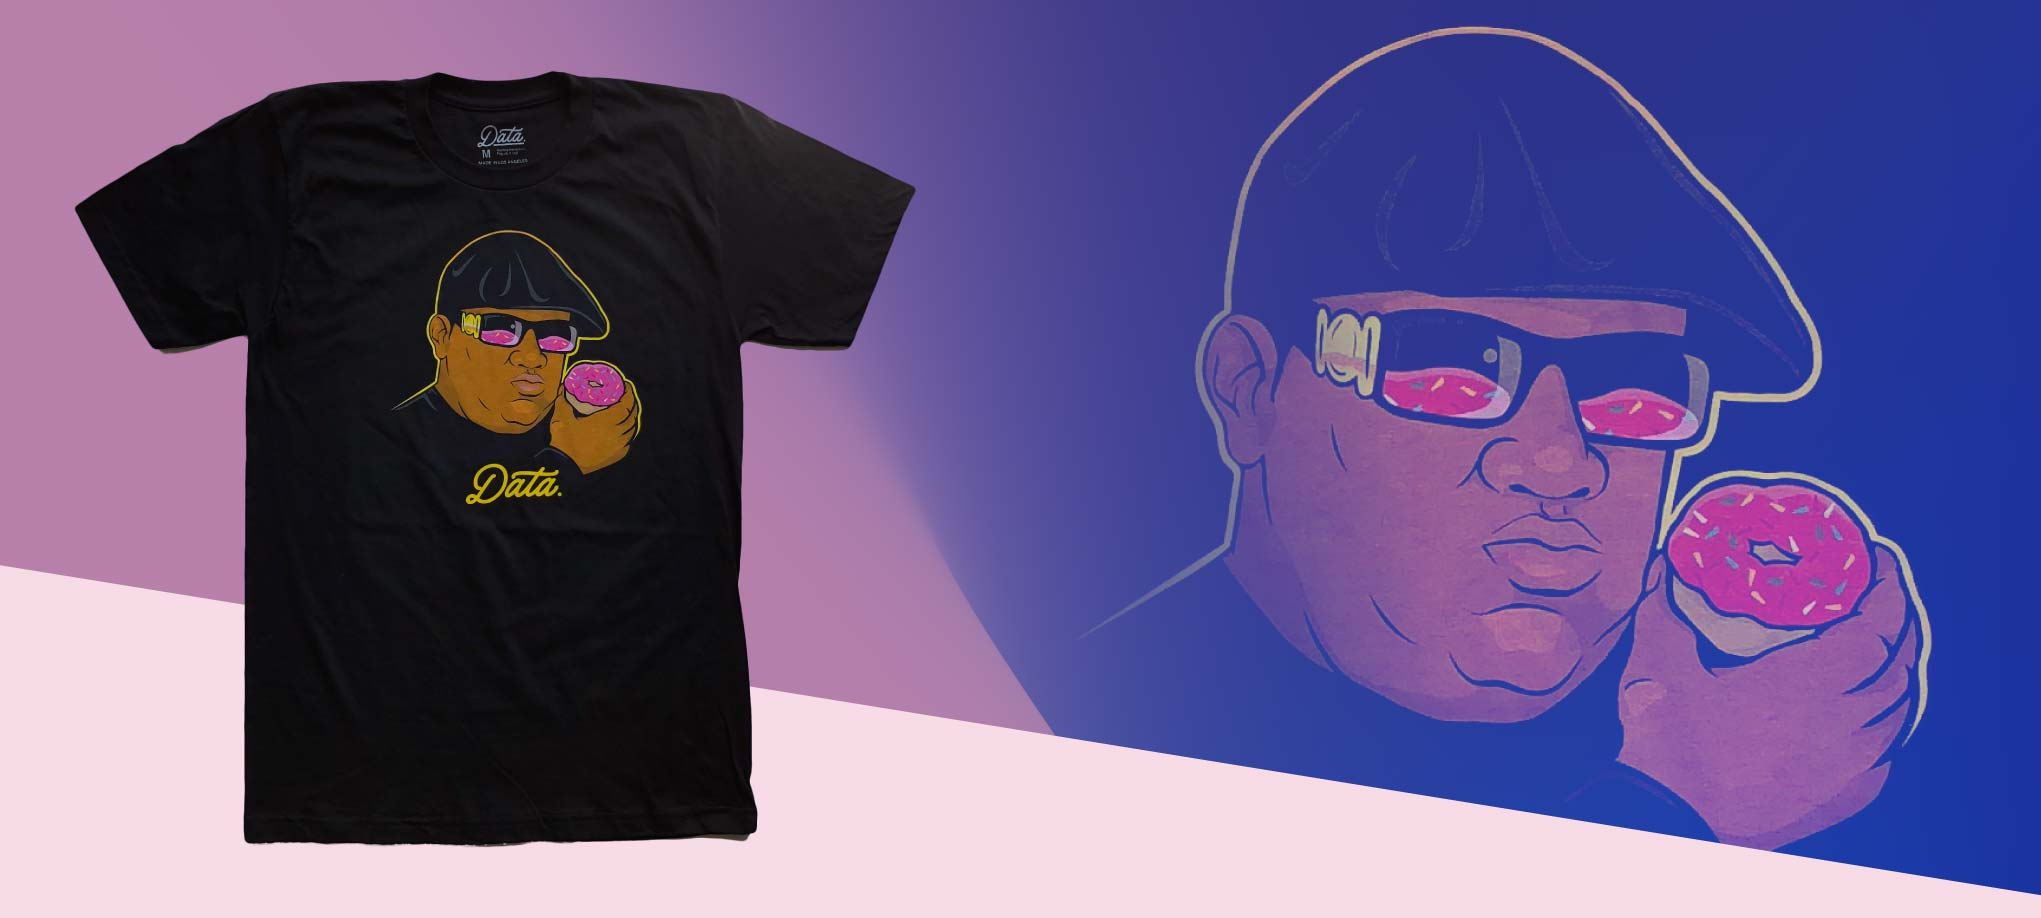 """Notorious Donut"" Shirt shirt Jake Beeson X Data 